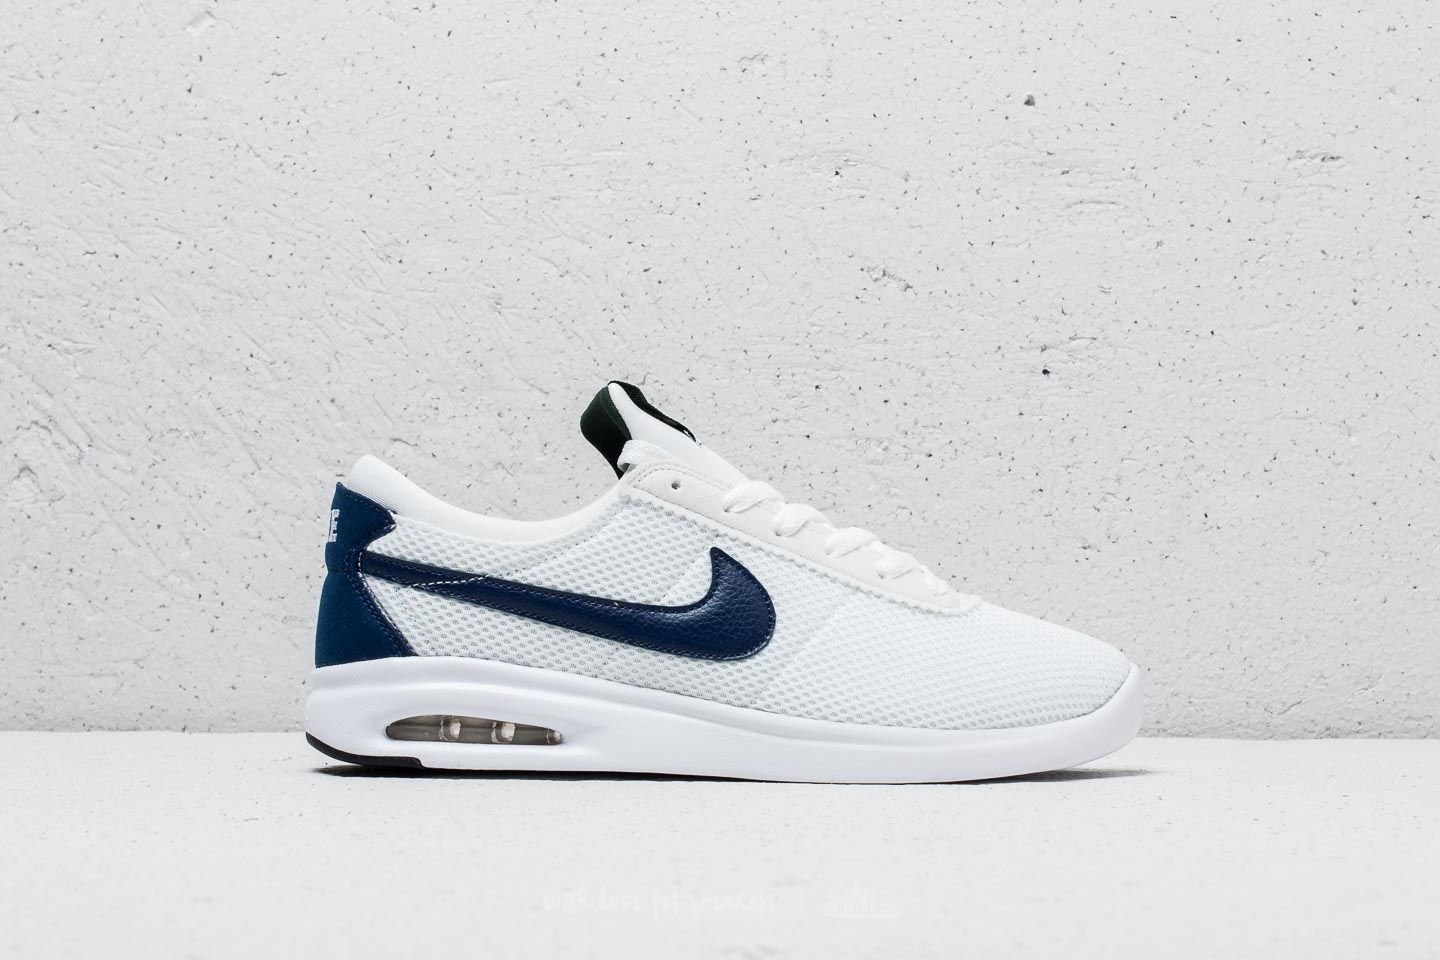 buy online 6d57f 4ce2a Nike SB Air Max Bruin Vapor TXT White Blue Void-Midnight Green at a